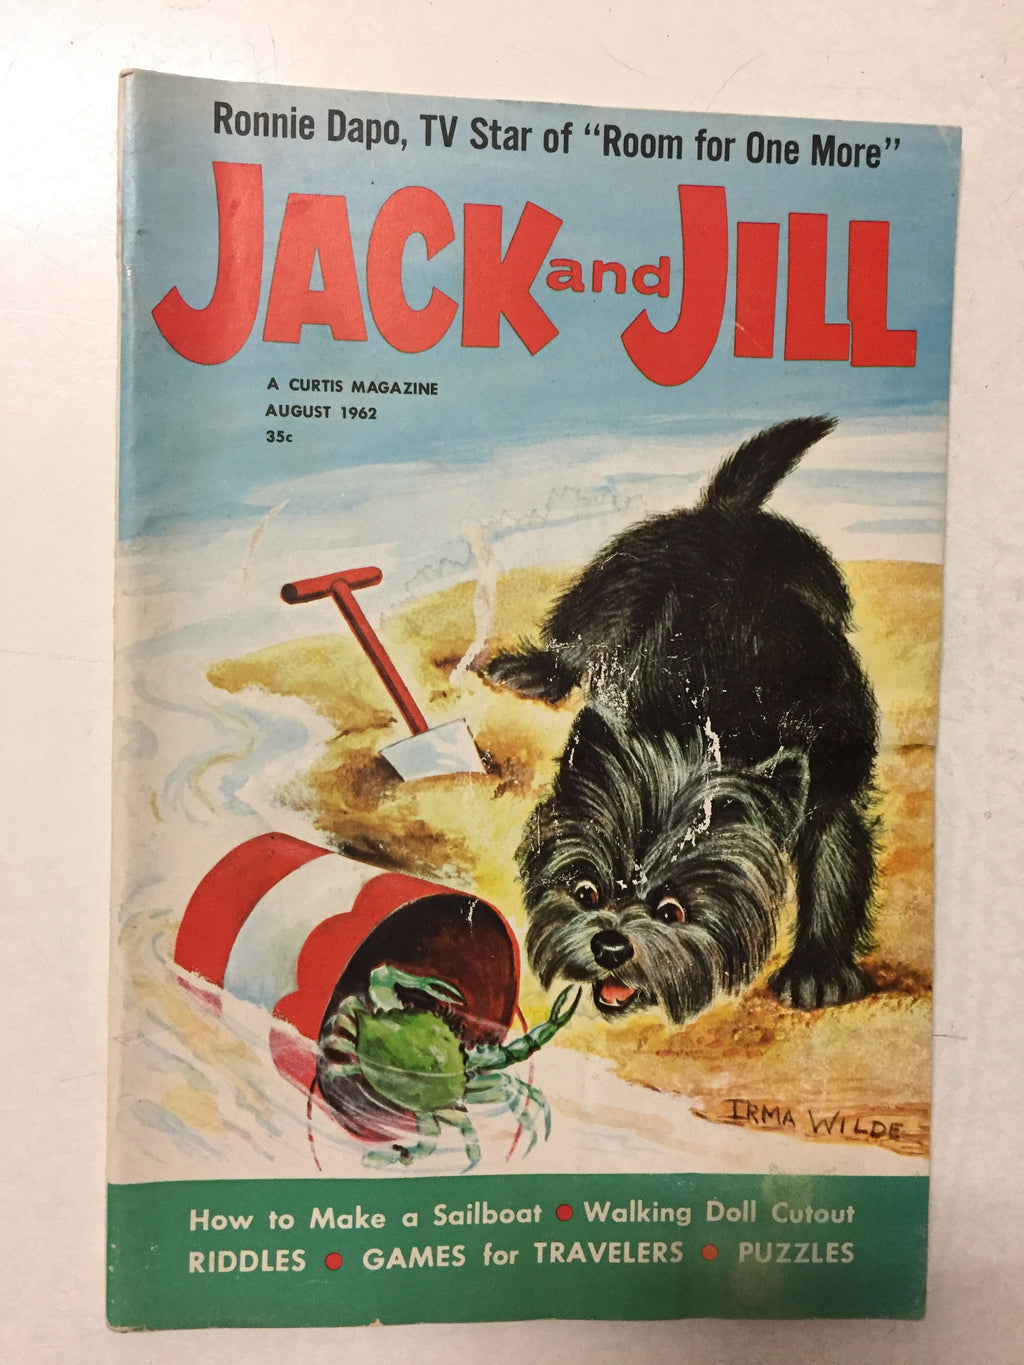 Jack and Jill Magazine August 1962 - Slickcatbooks